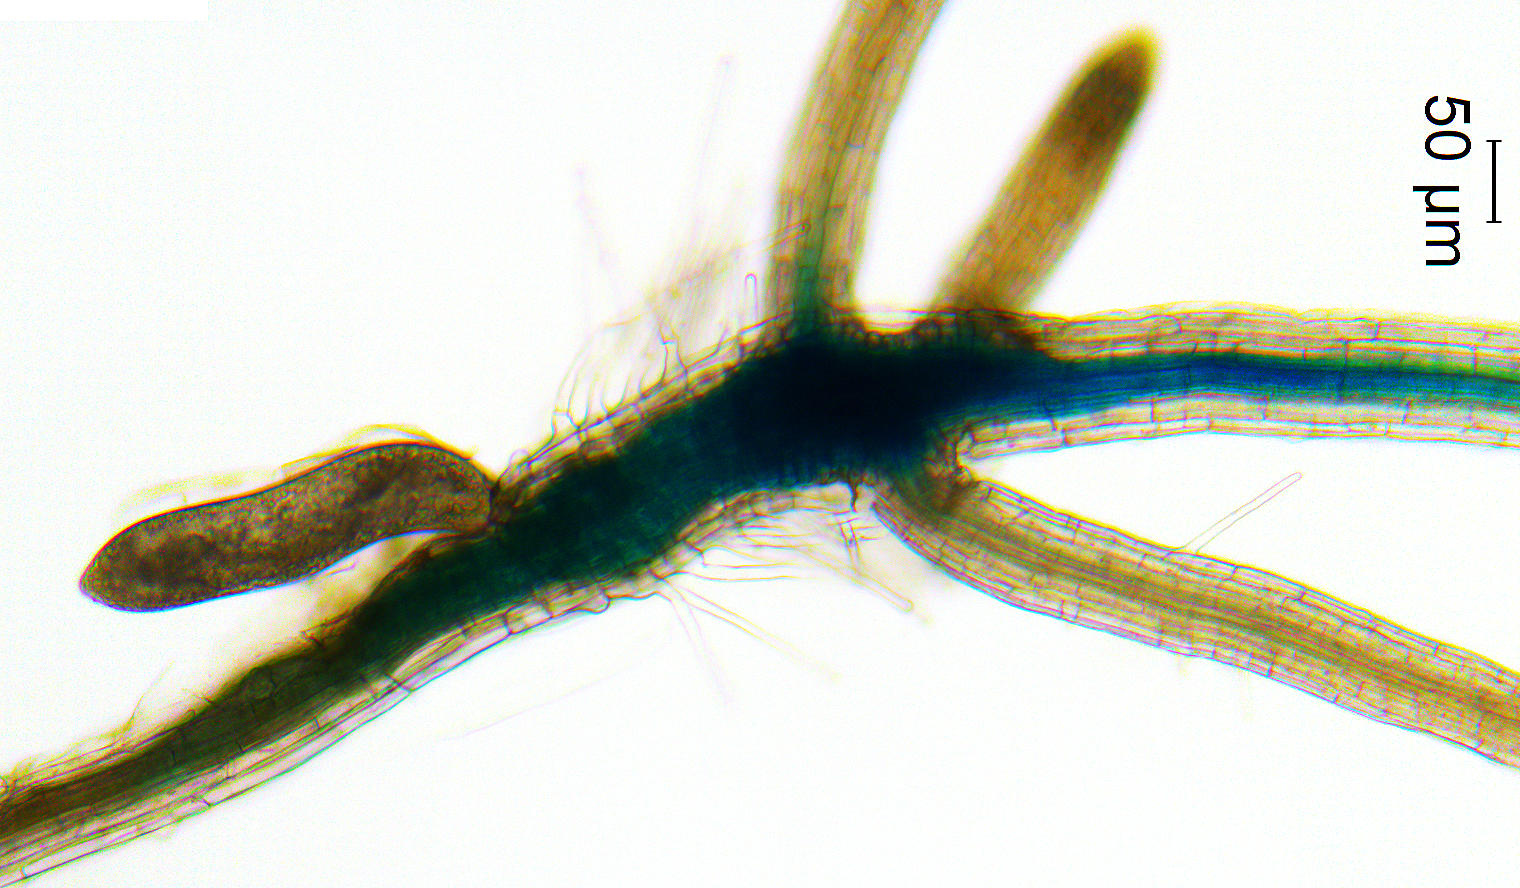 A nematode (the oblong object on the upper left) activates the vascular stem cell pathway in the developing nematode feeding site (syncytium) on a plant root. | contributed by Melissa Mitchum